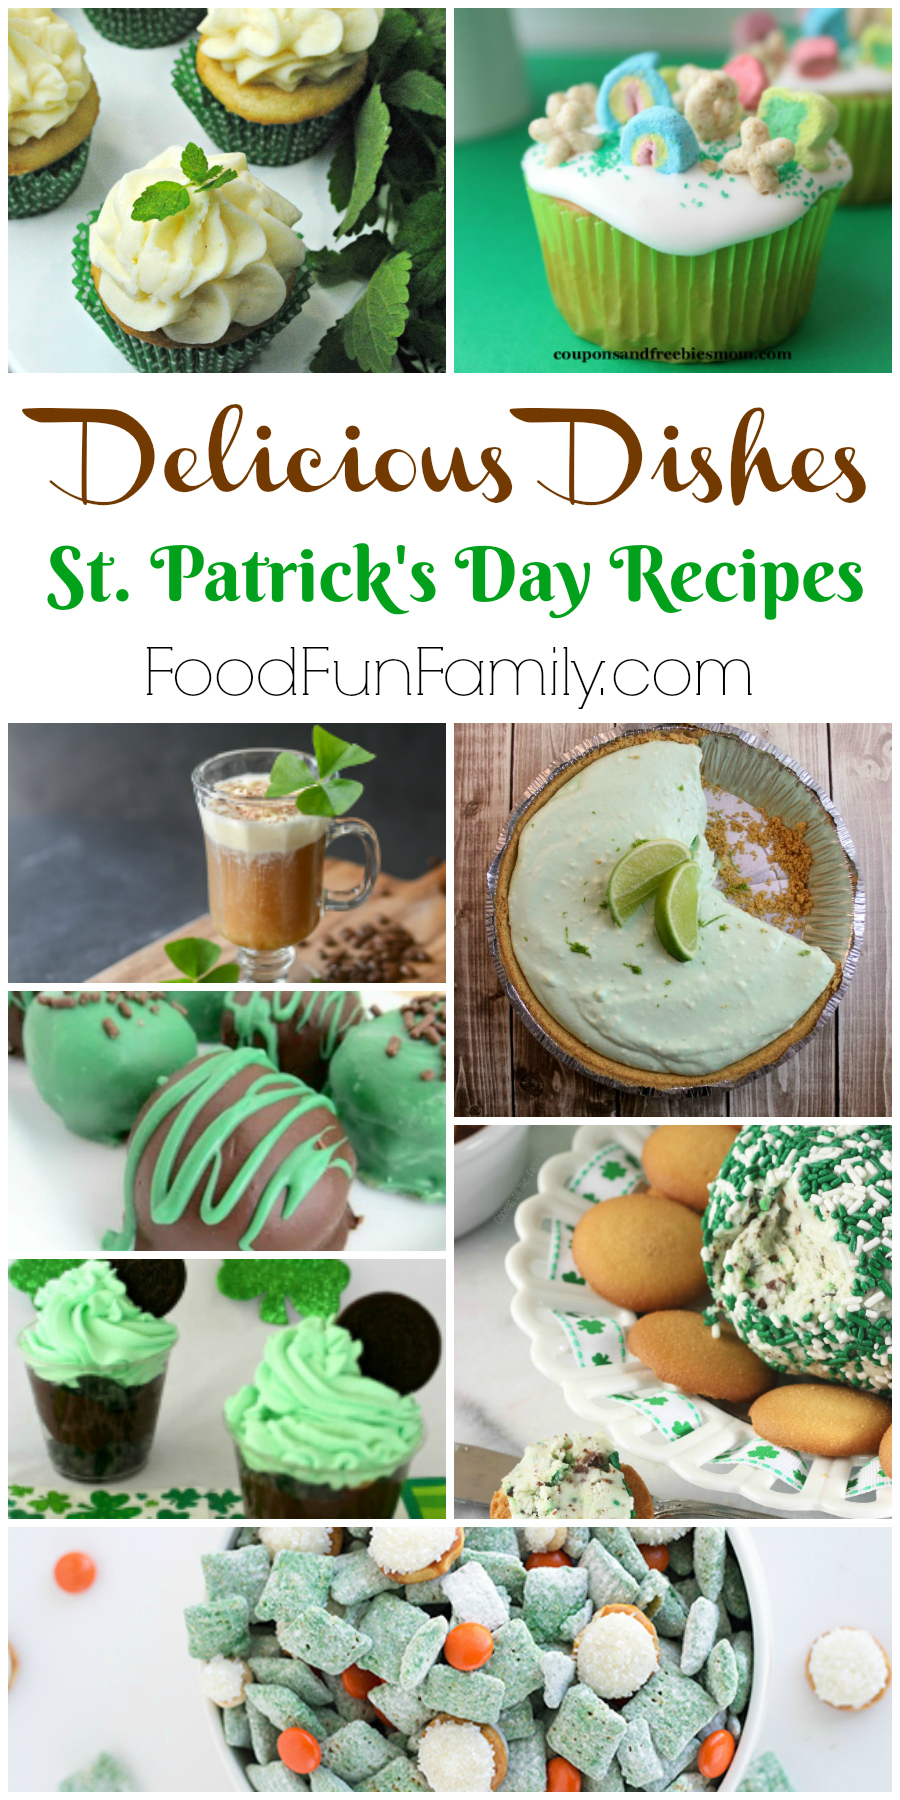 St. Patrick's Day Recipes - a Delicious Dishes Recipe Party collection from Food Fun Family